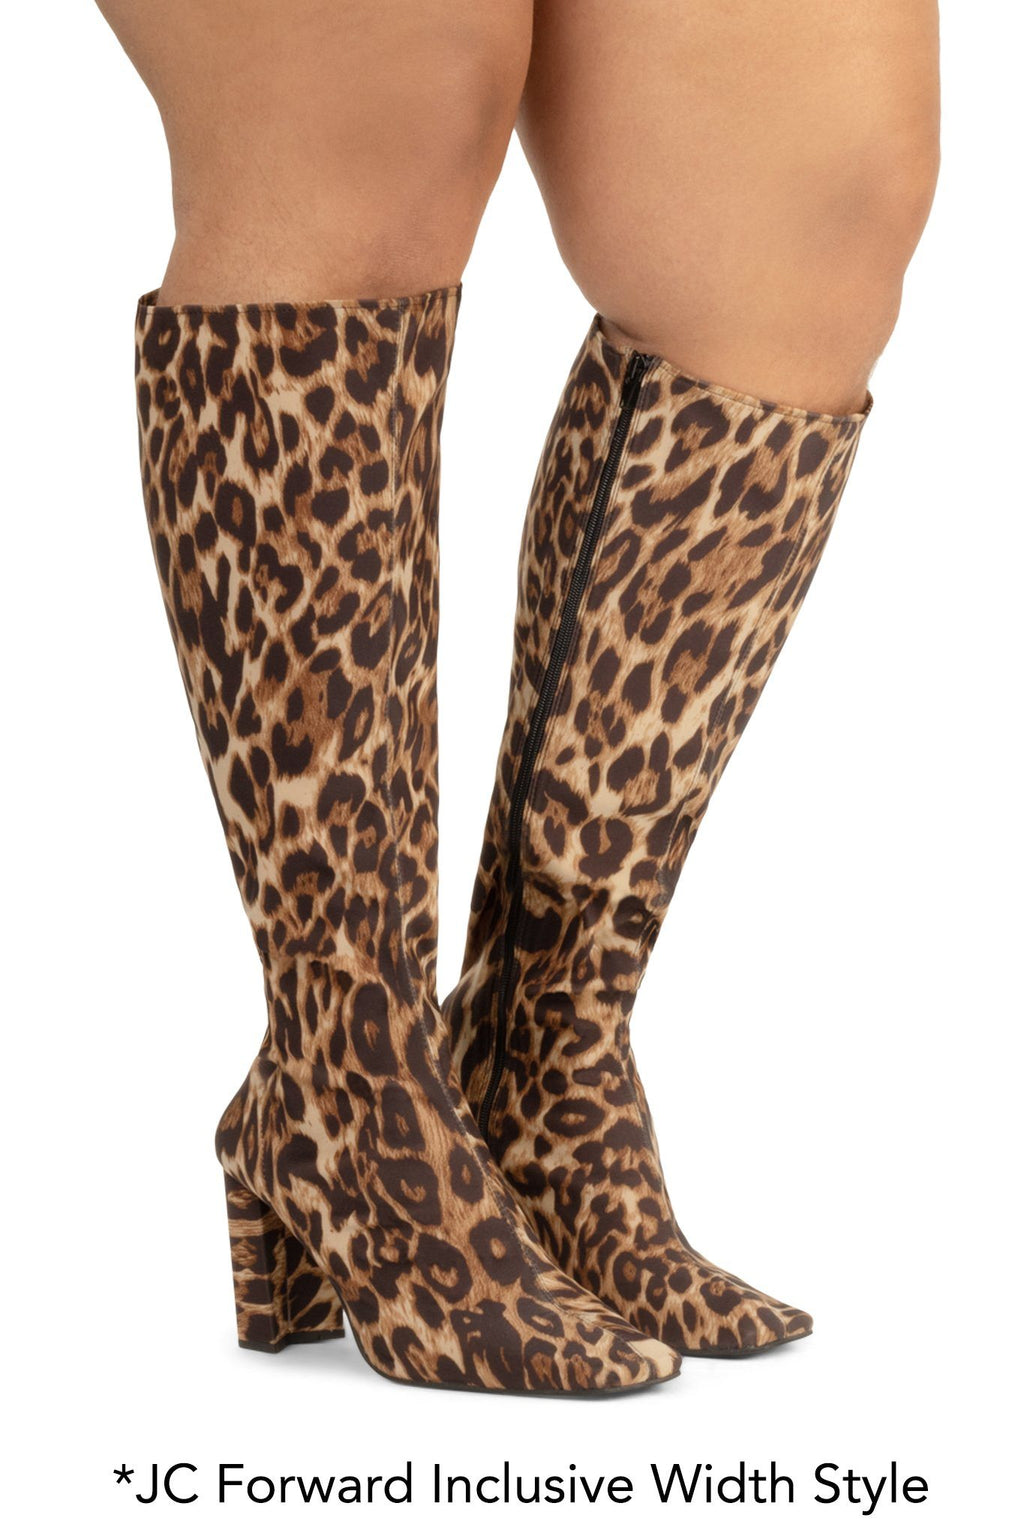 MALLGRAB-K Knee-High Boot RB Cheetah 6W